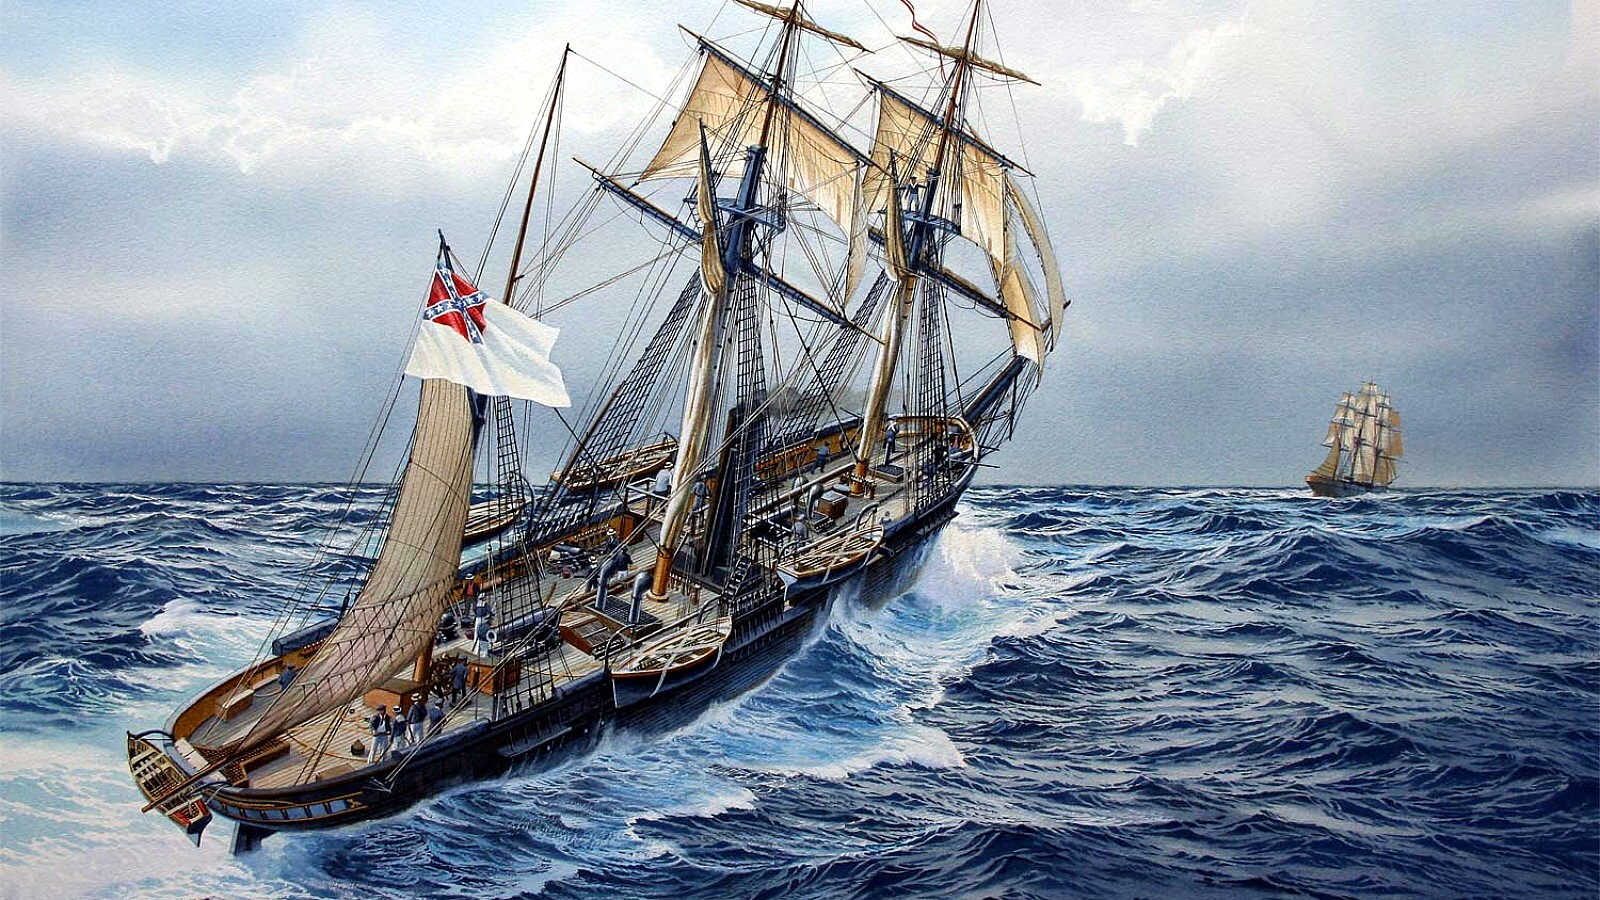 You Can Run, CSS Alabama chases down Yankee clipper.